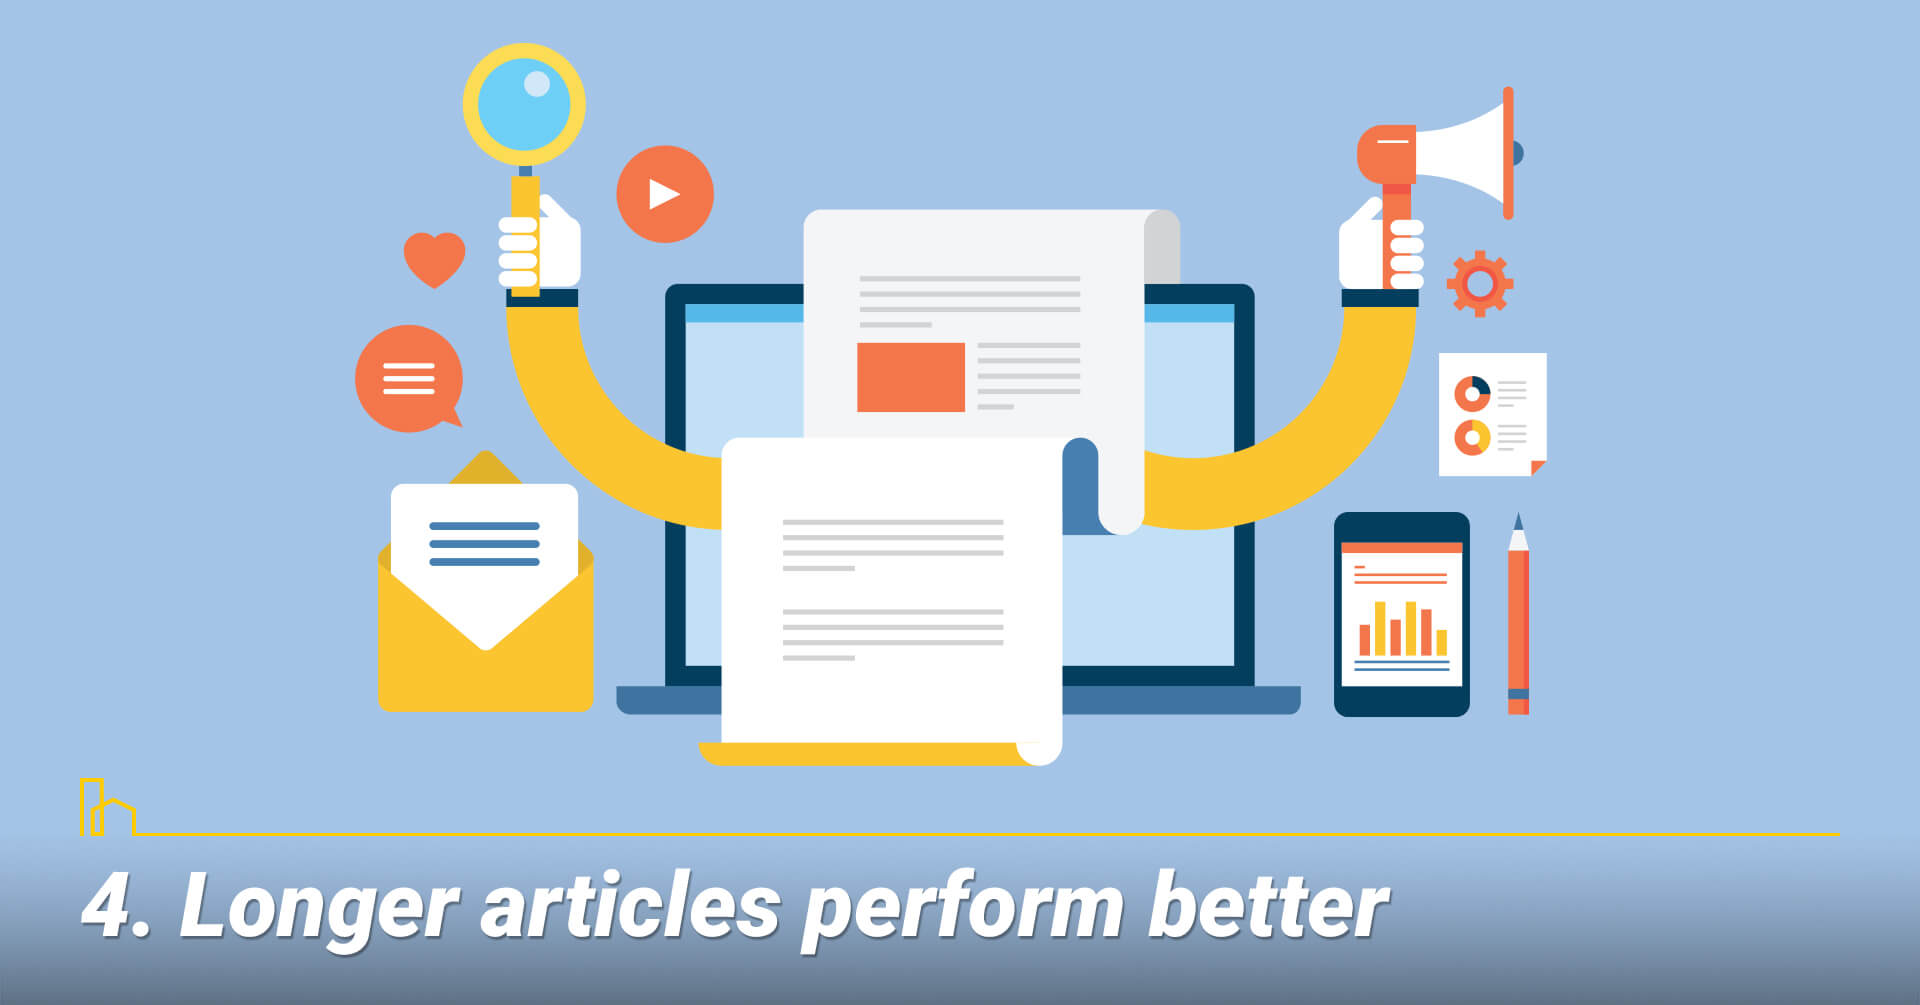 Longer articles perform better